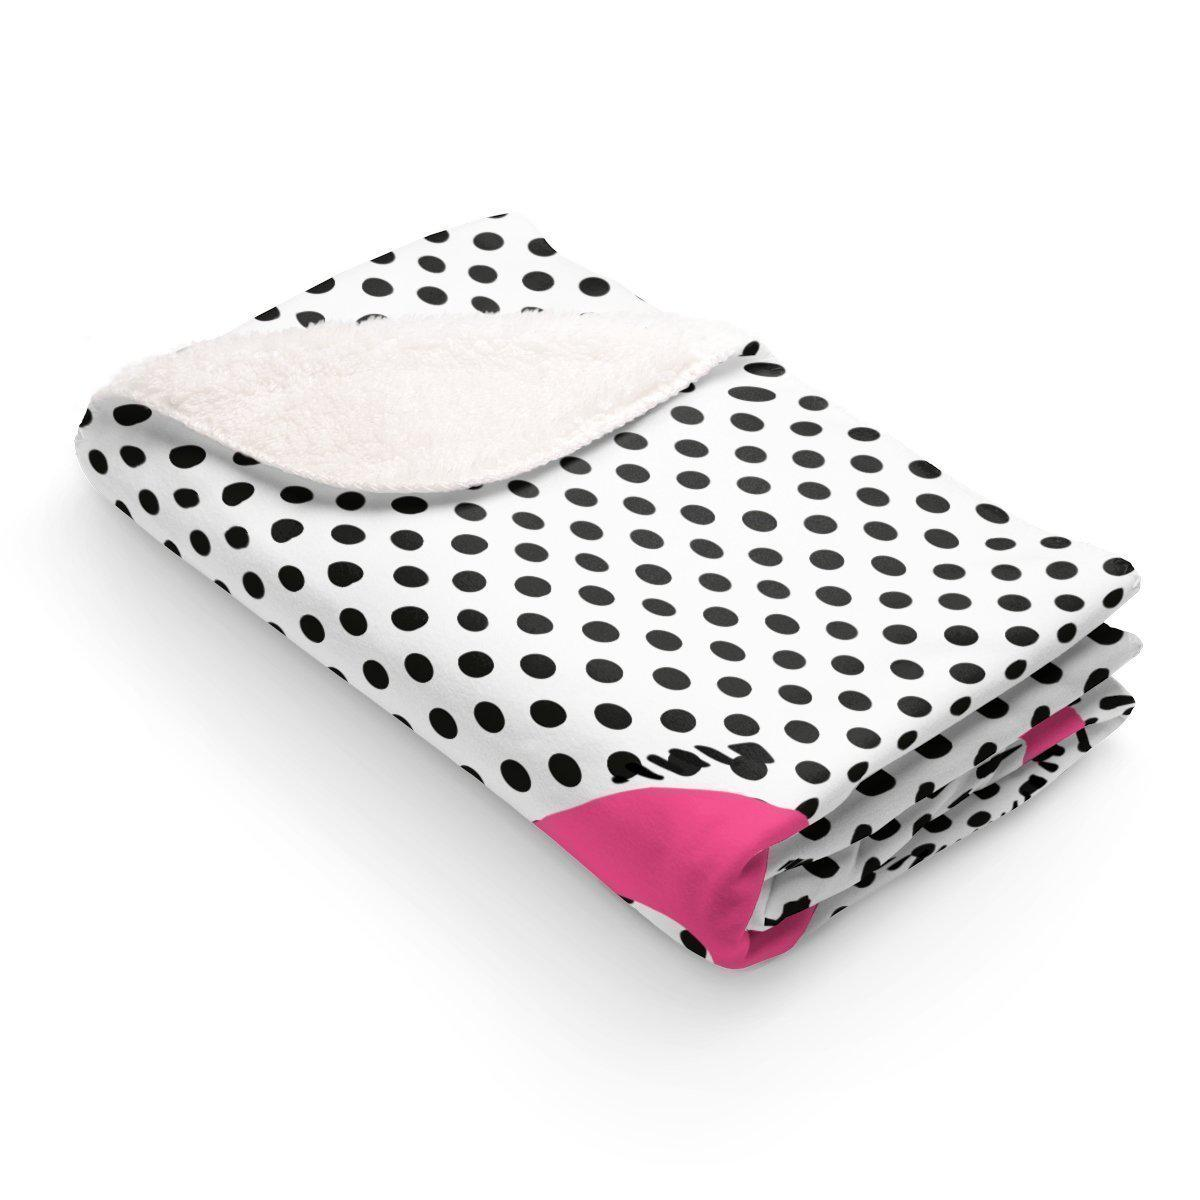 Pink anchor on polka Sherpa Fleece Blanket-Home - Throws & Blankets-Maison d'Elite-50x60-Très Elite